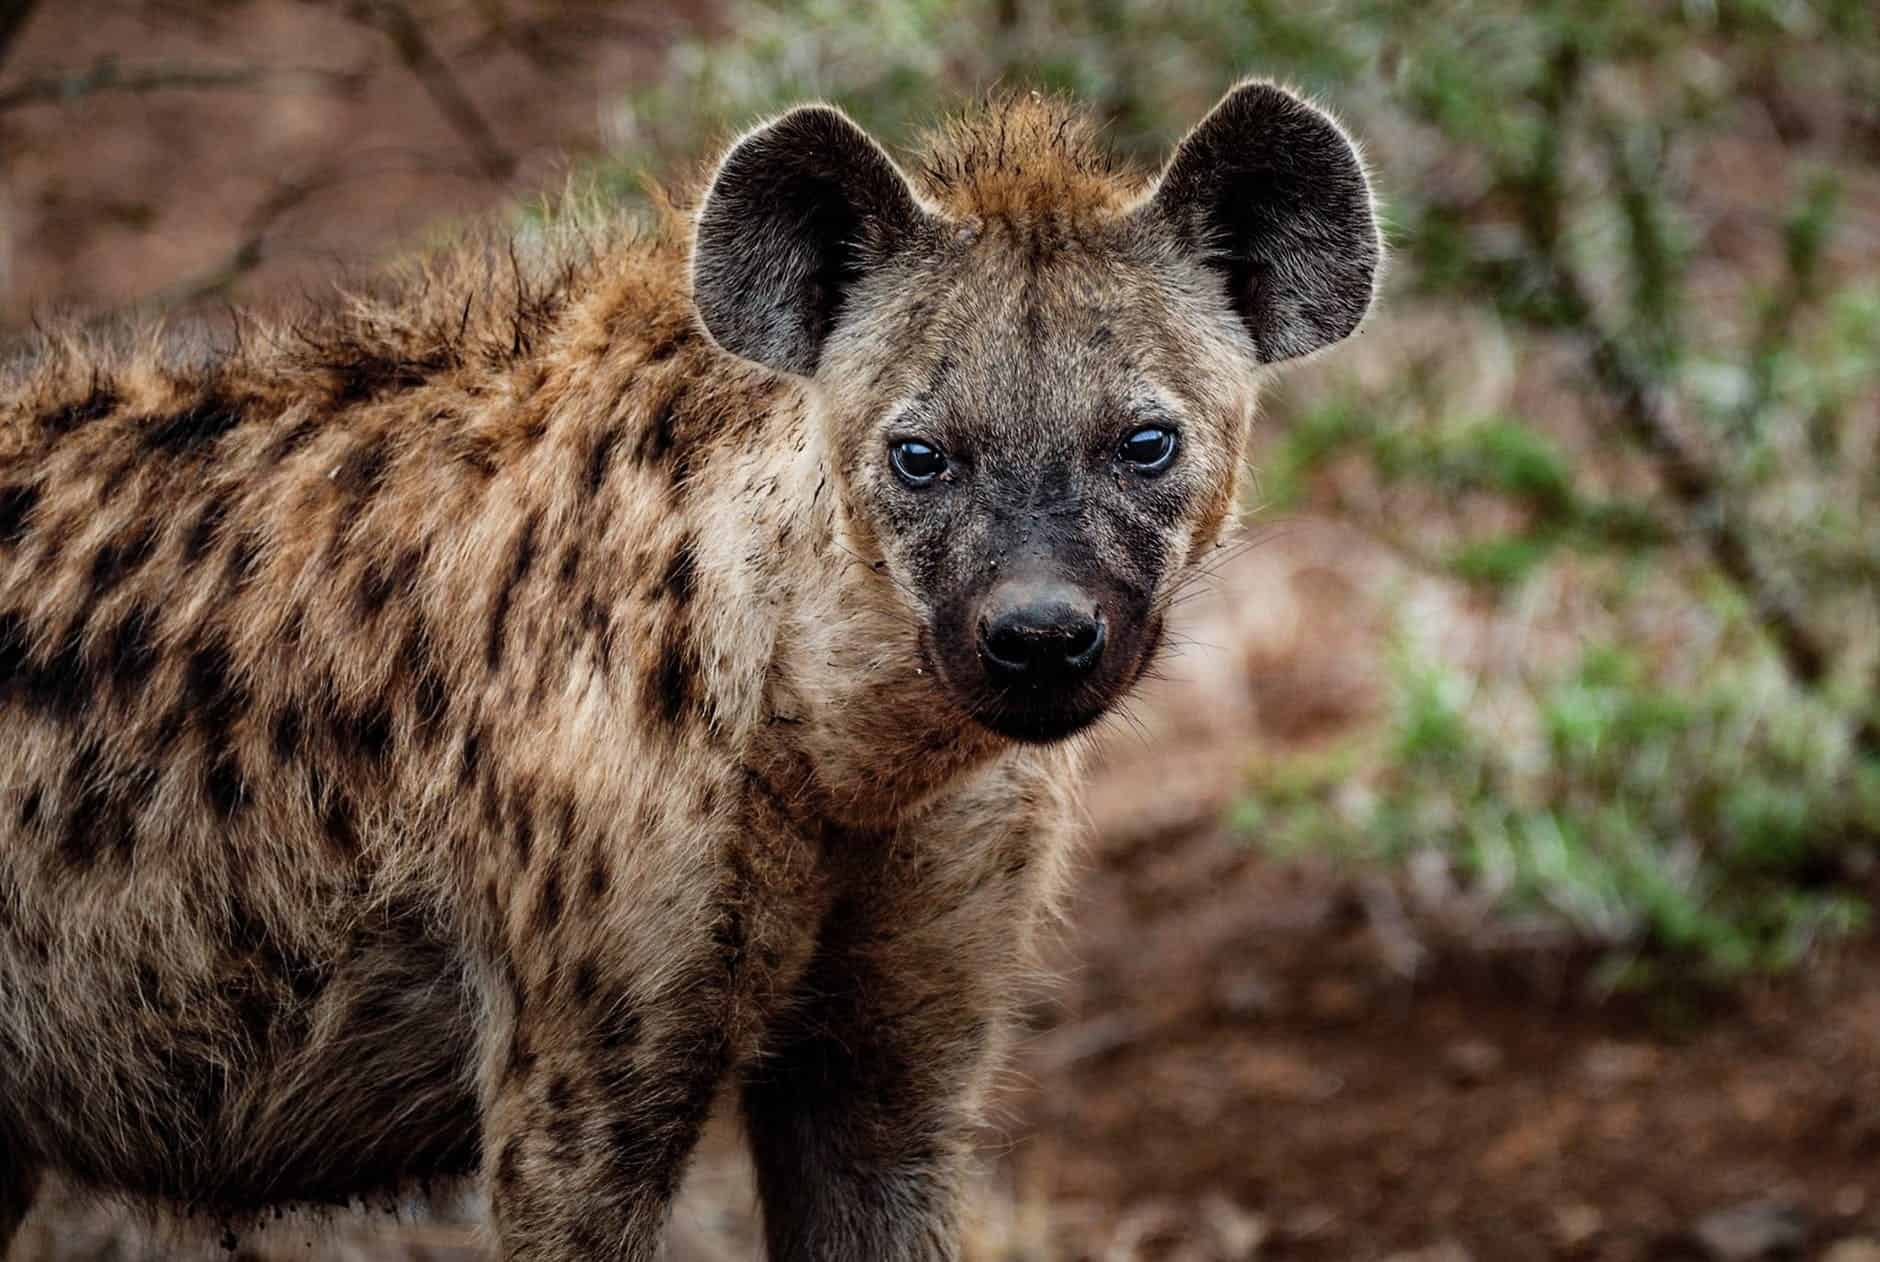 What are the interesting facts about Hyena?